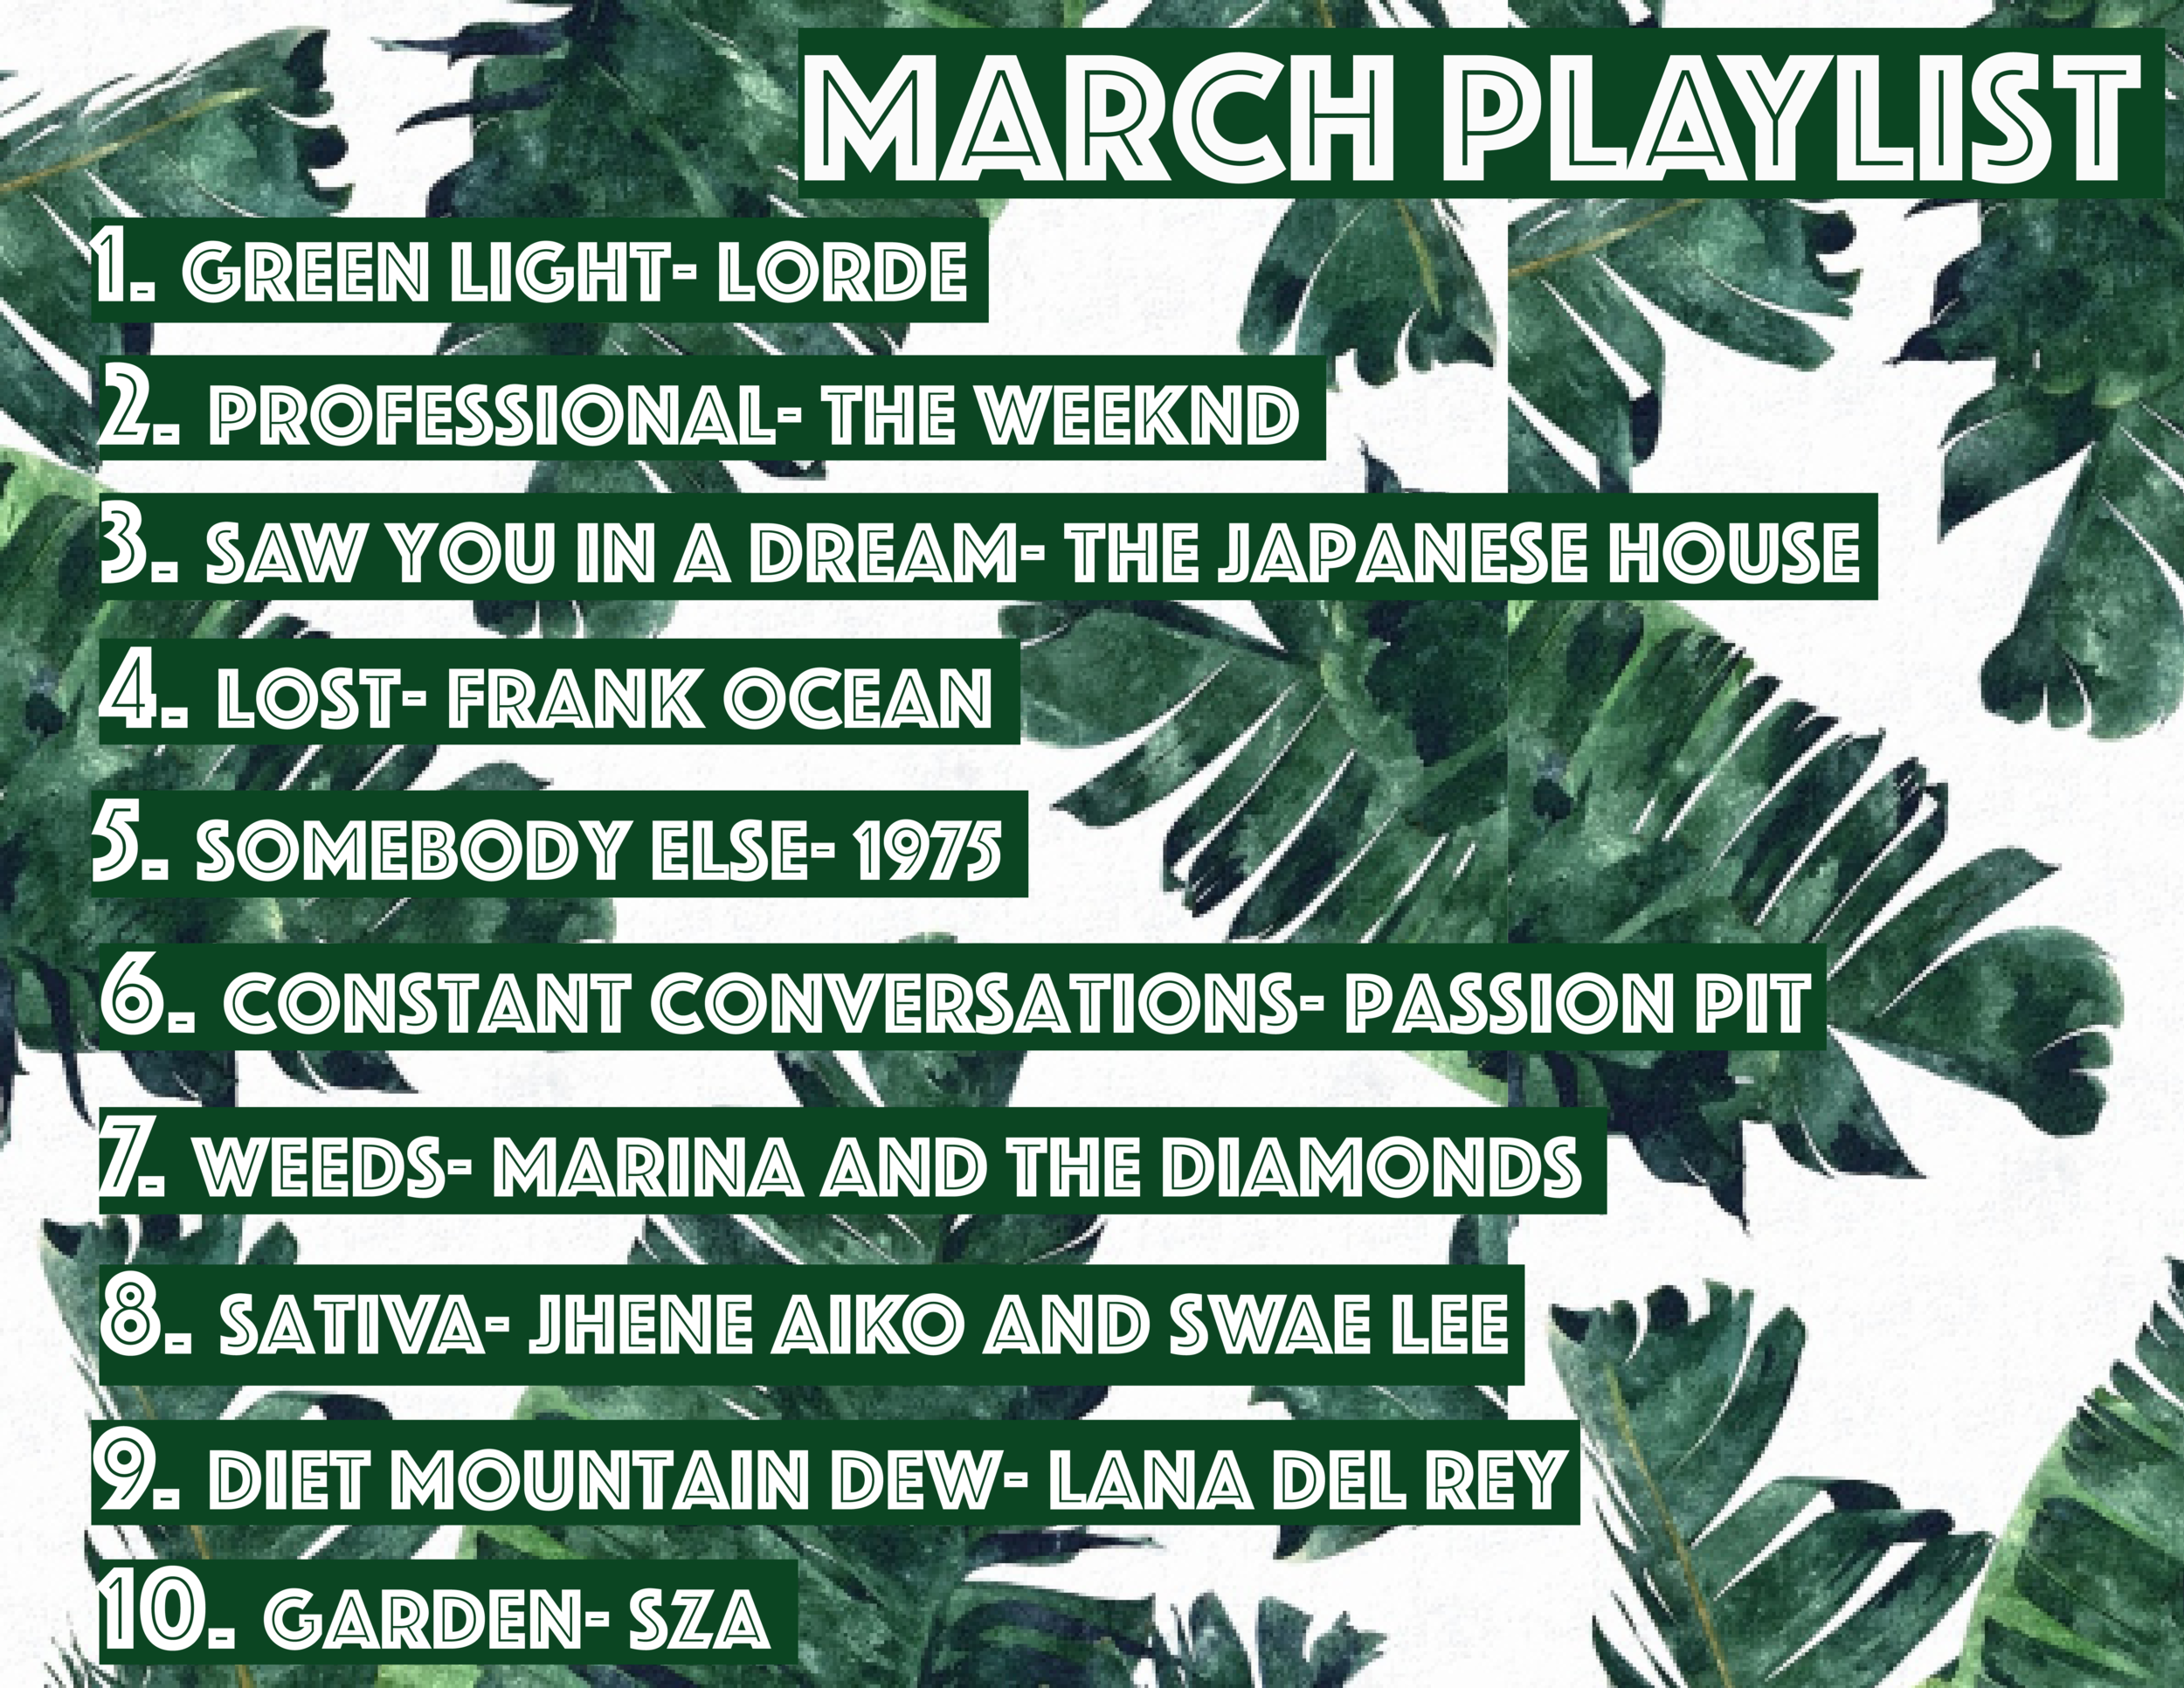 March playlist copy.png